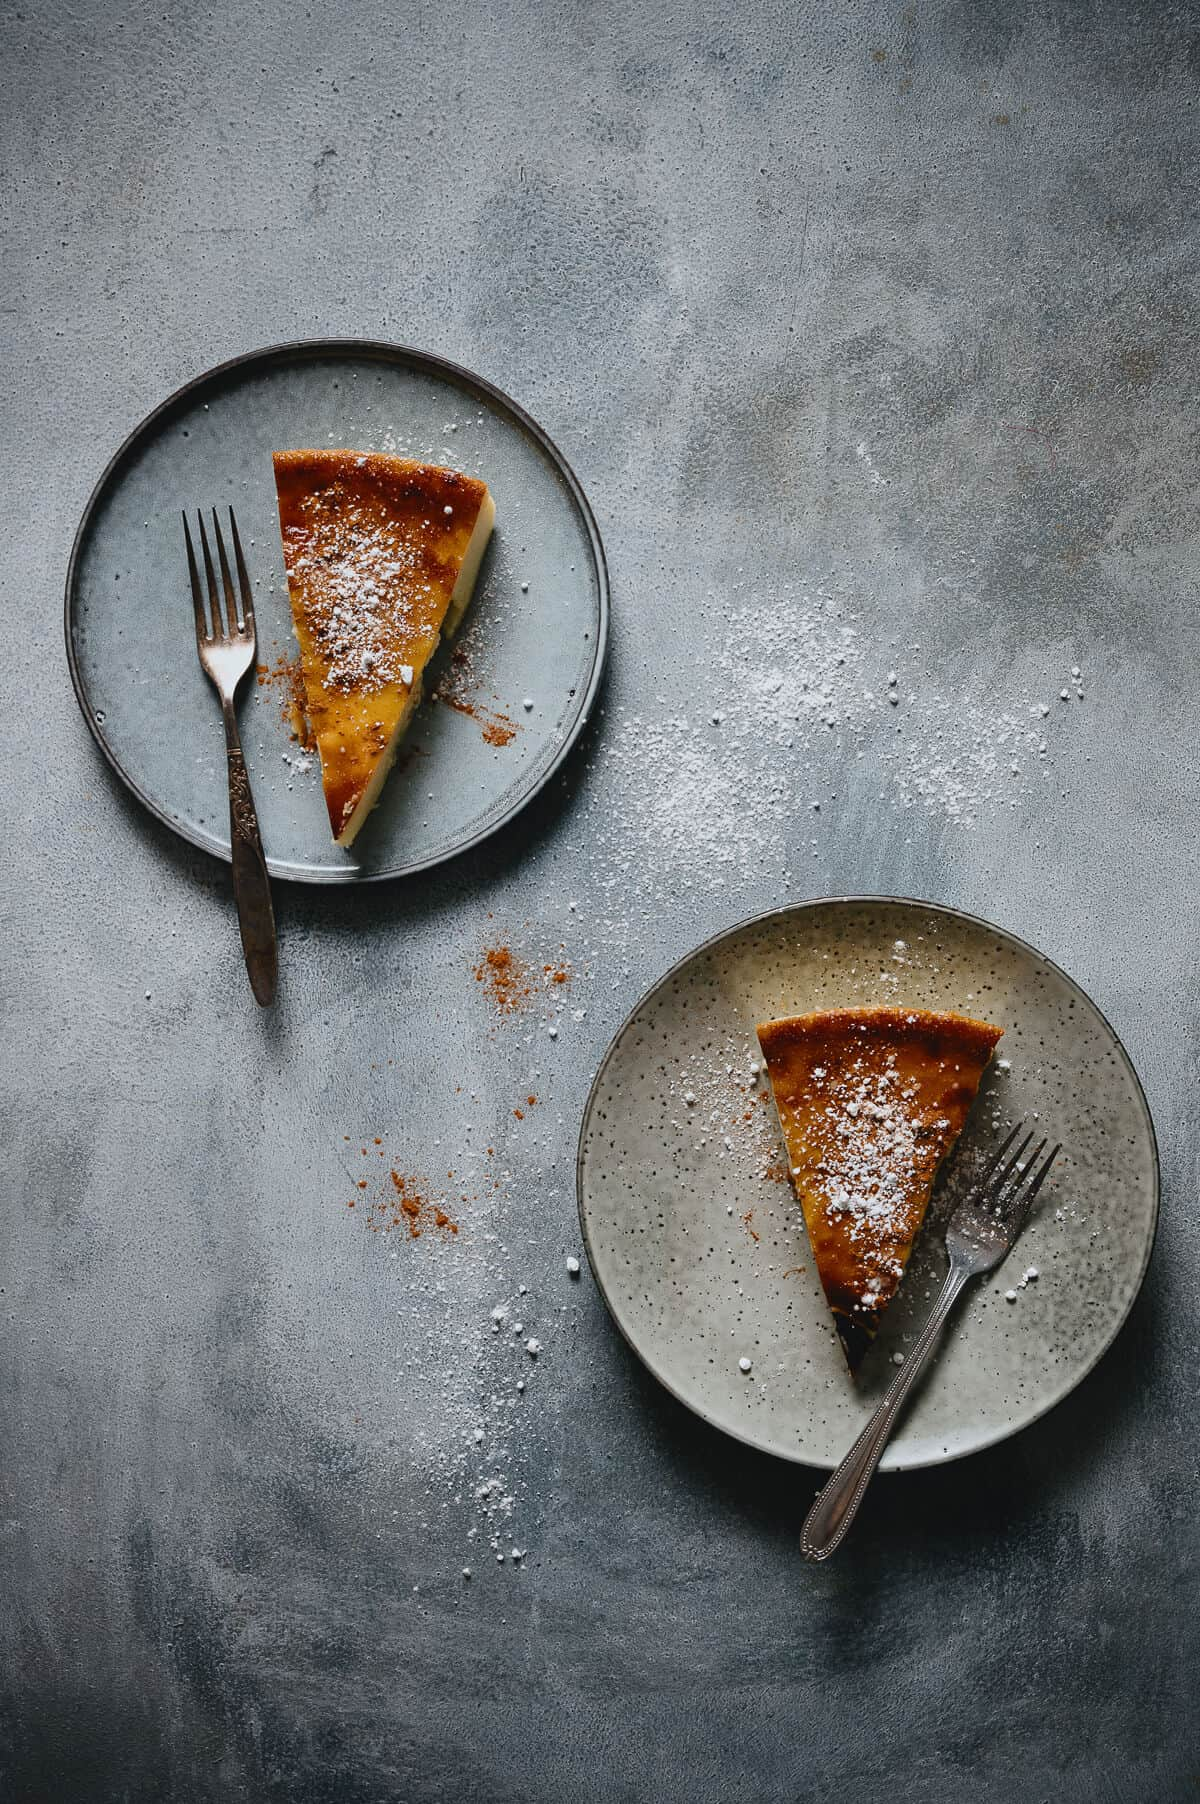 2 plates each with a serve of galatopita - greek milk pie placed on a great table